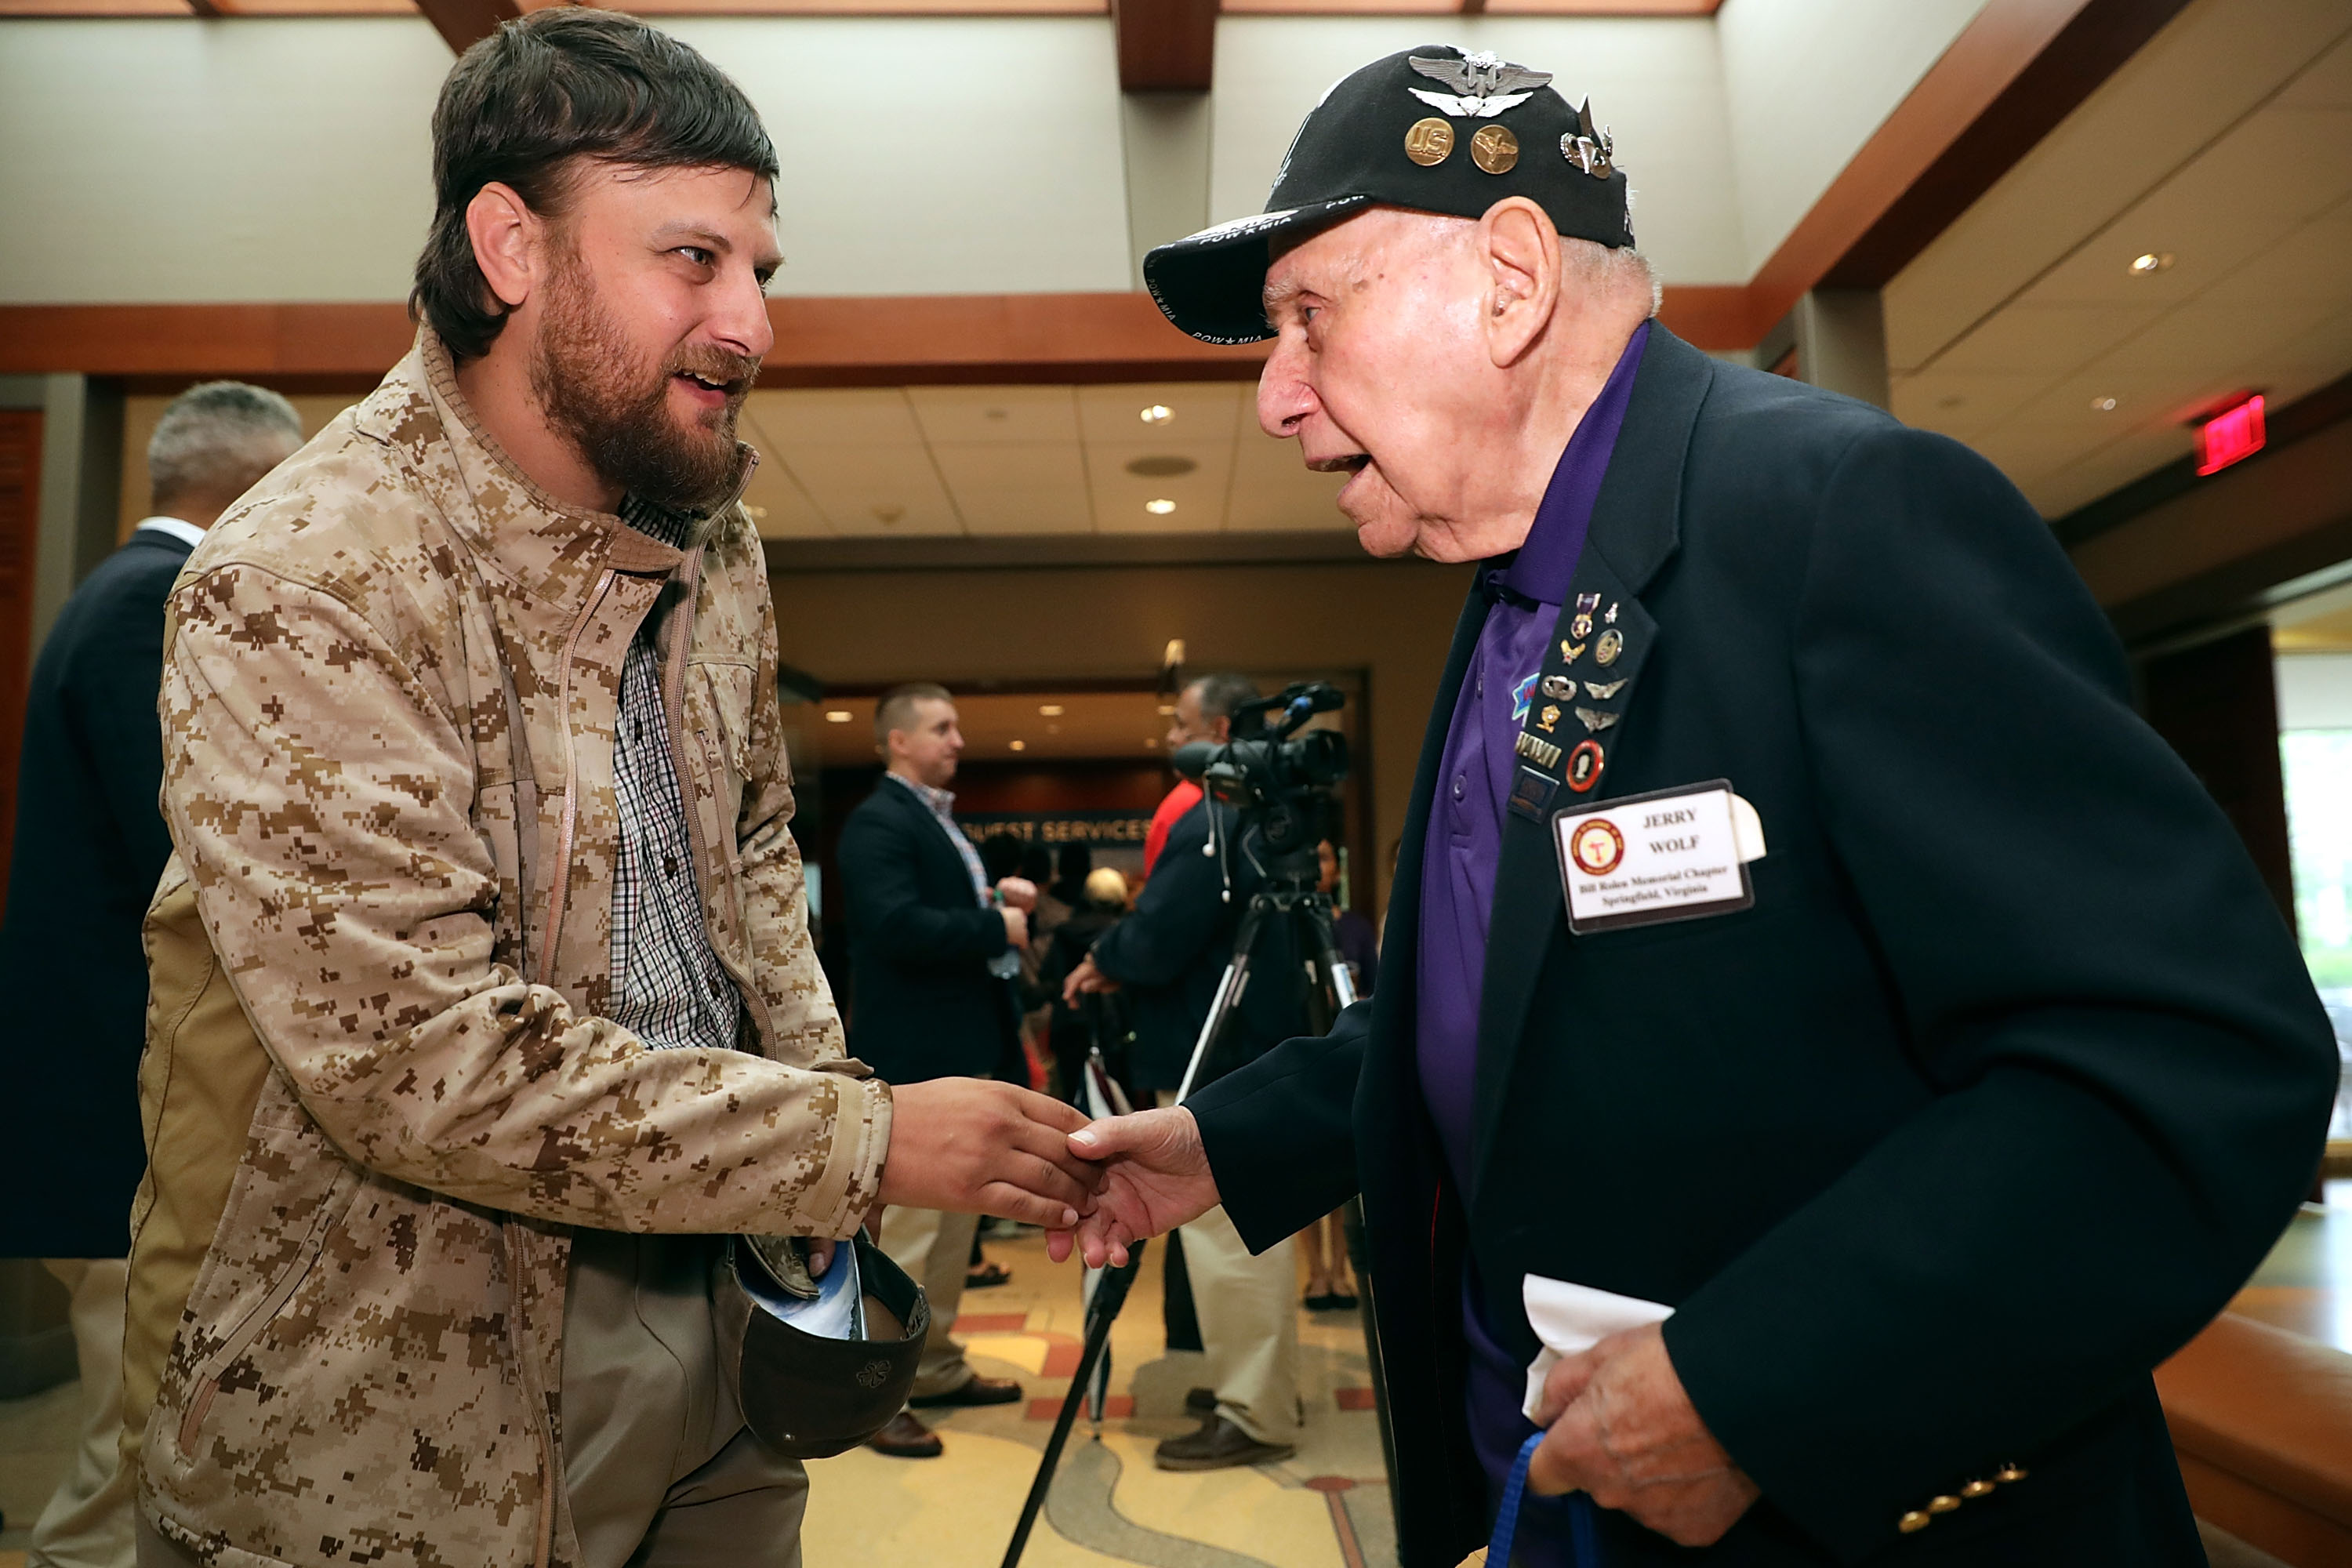 Iraq War veteran Derrick Anthony (L) of Quad Cities, IA, greets fellow Purple Heart recipient and WWII veteran and POW Jerry Wolf of during the National Purple Heart Day Ceremony at George Washington's Mount Vernon August 7, 2017 in Mount Vernon, Virginia. Chip Somodevilla/Getty Images